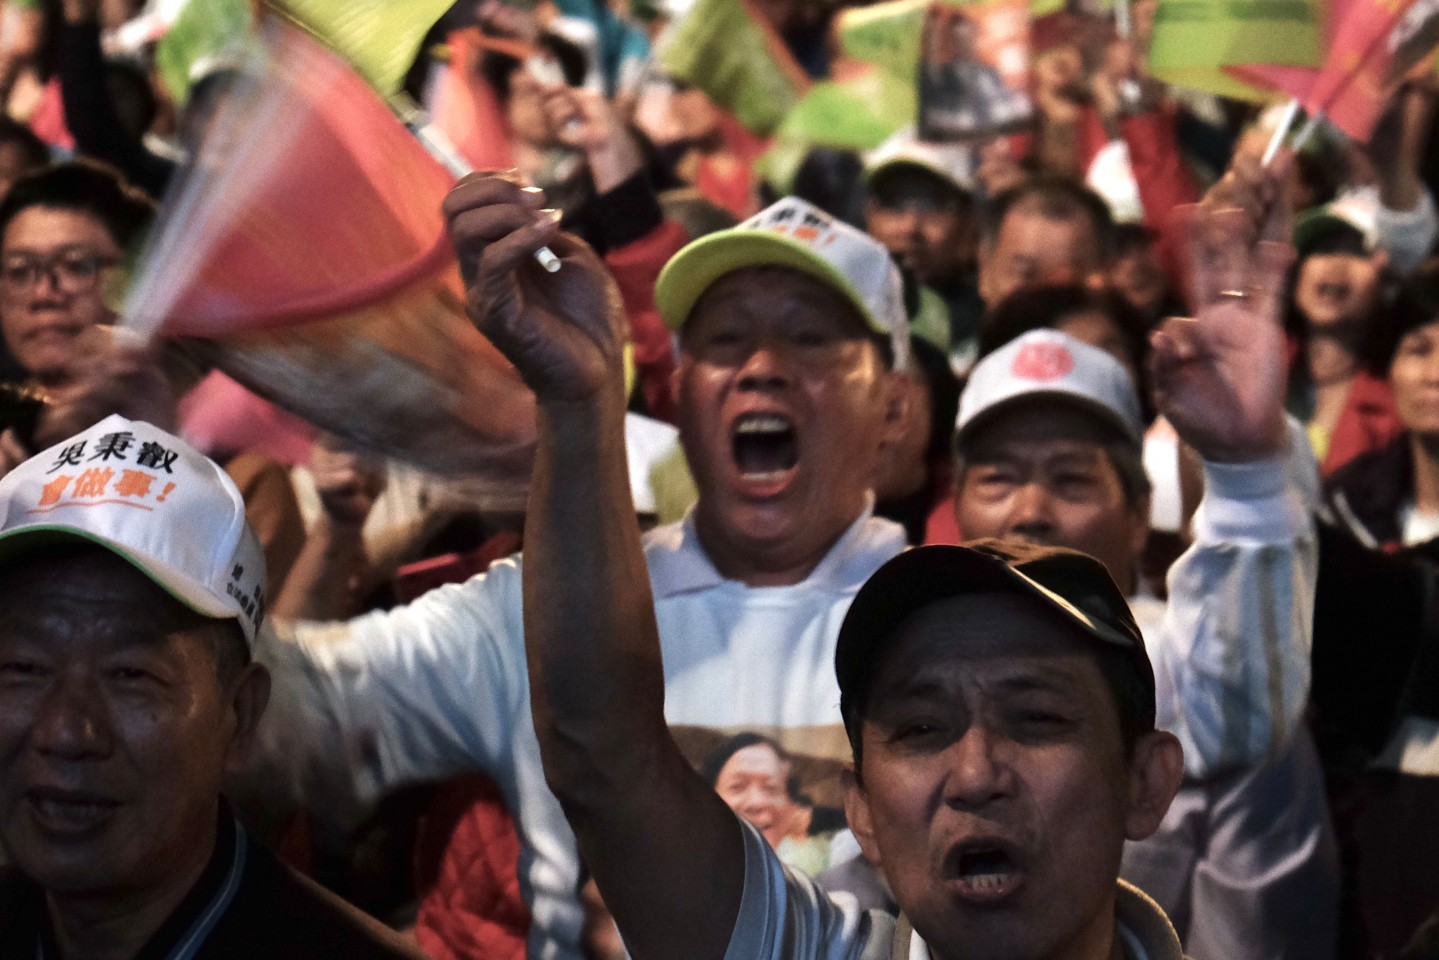 Supporters of Tsai Ing-wen wave flags during a rally at the Xinzhuang Stadium in New Taipei City on January 5, 2020. (Sam Yeh/AFP)